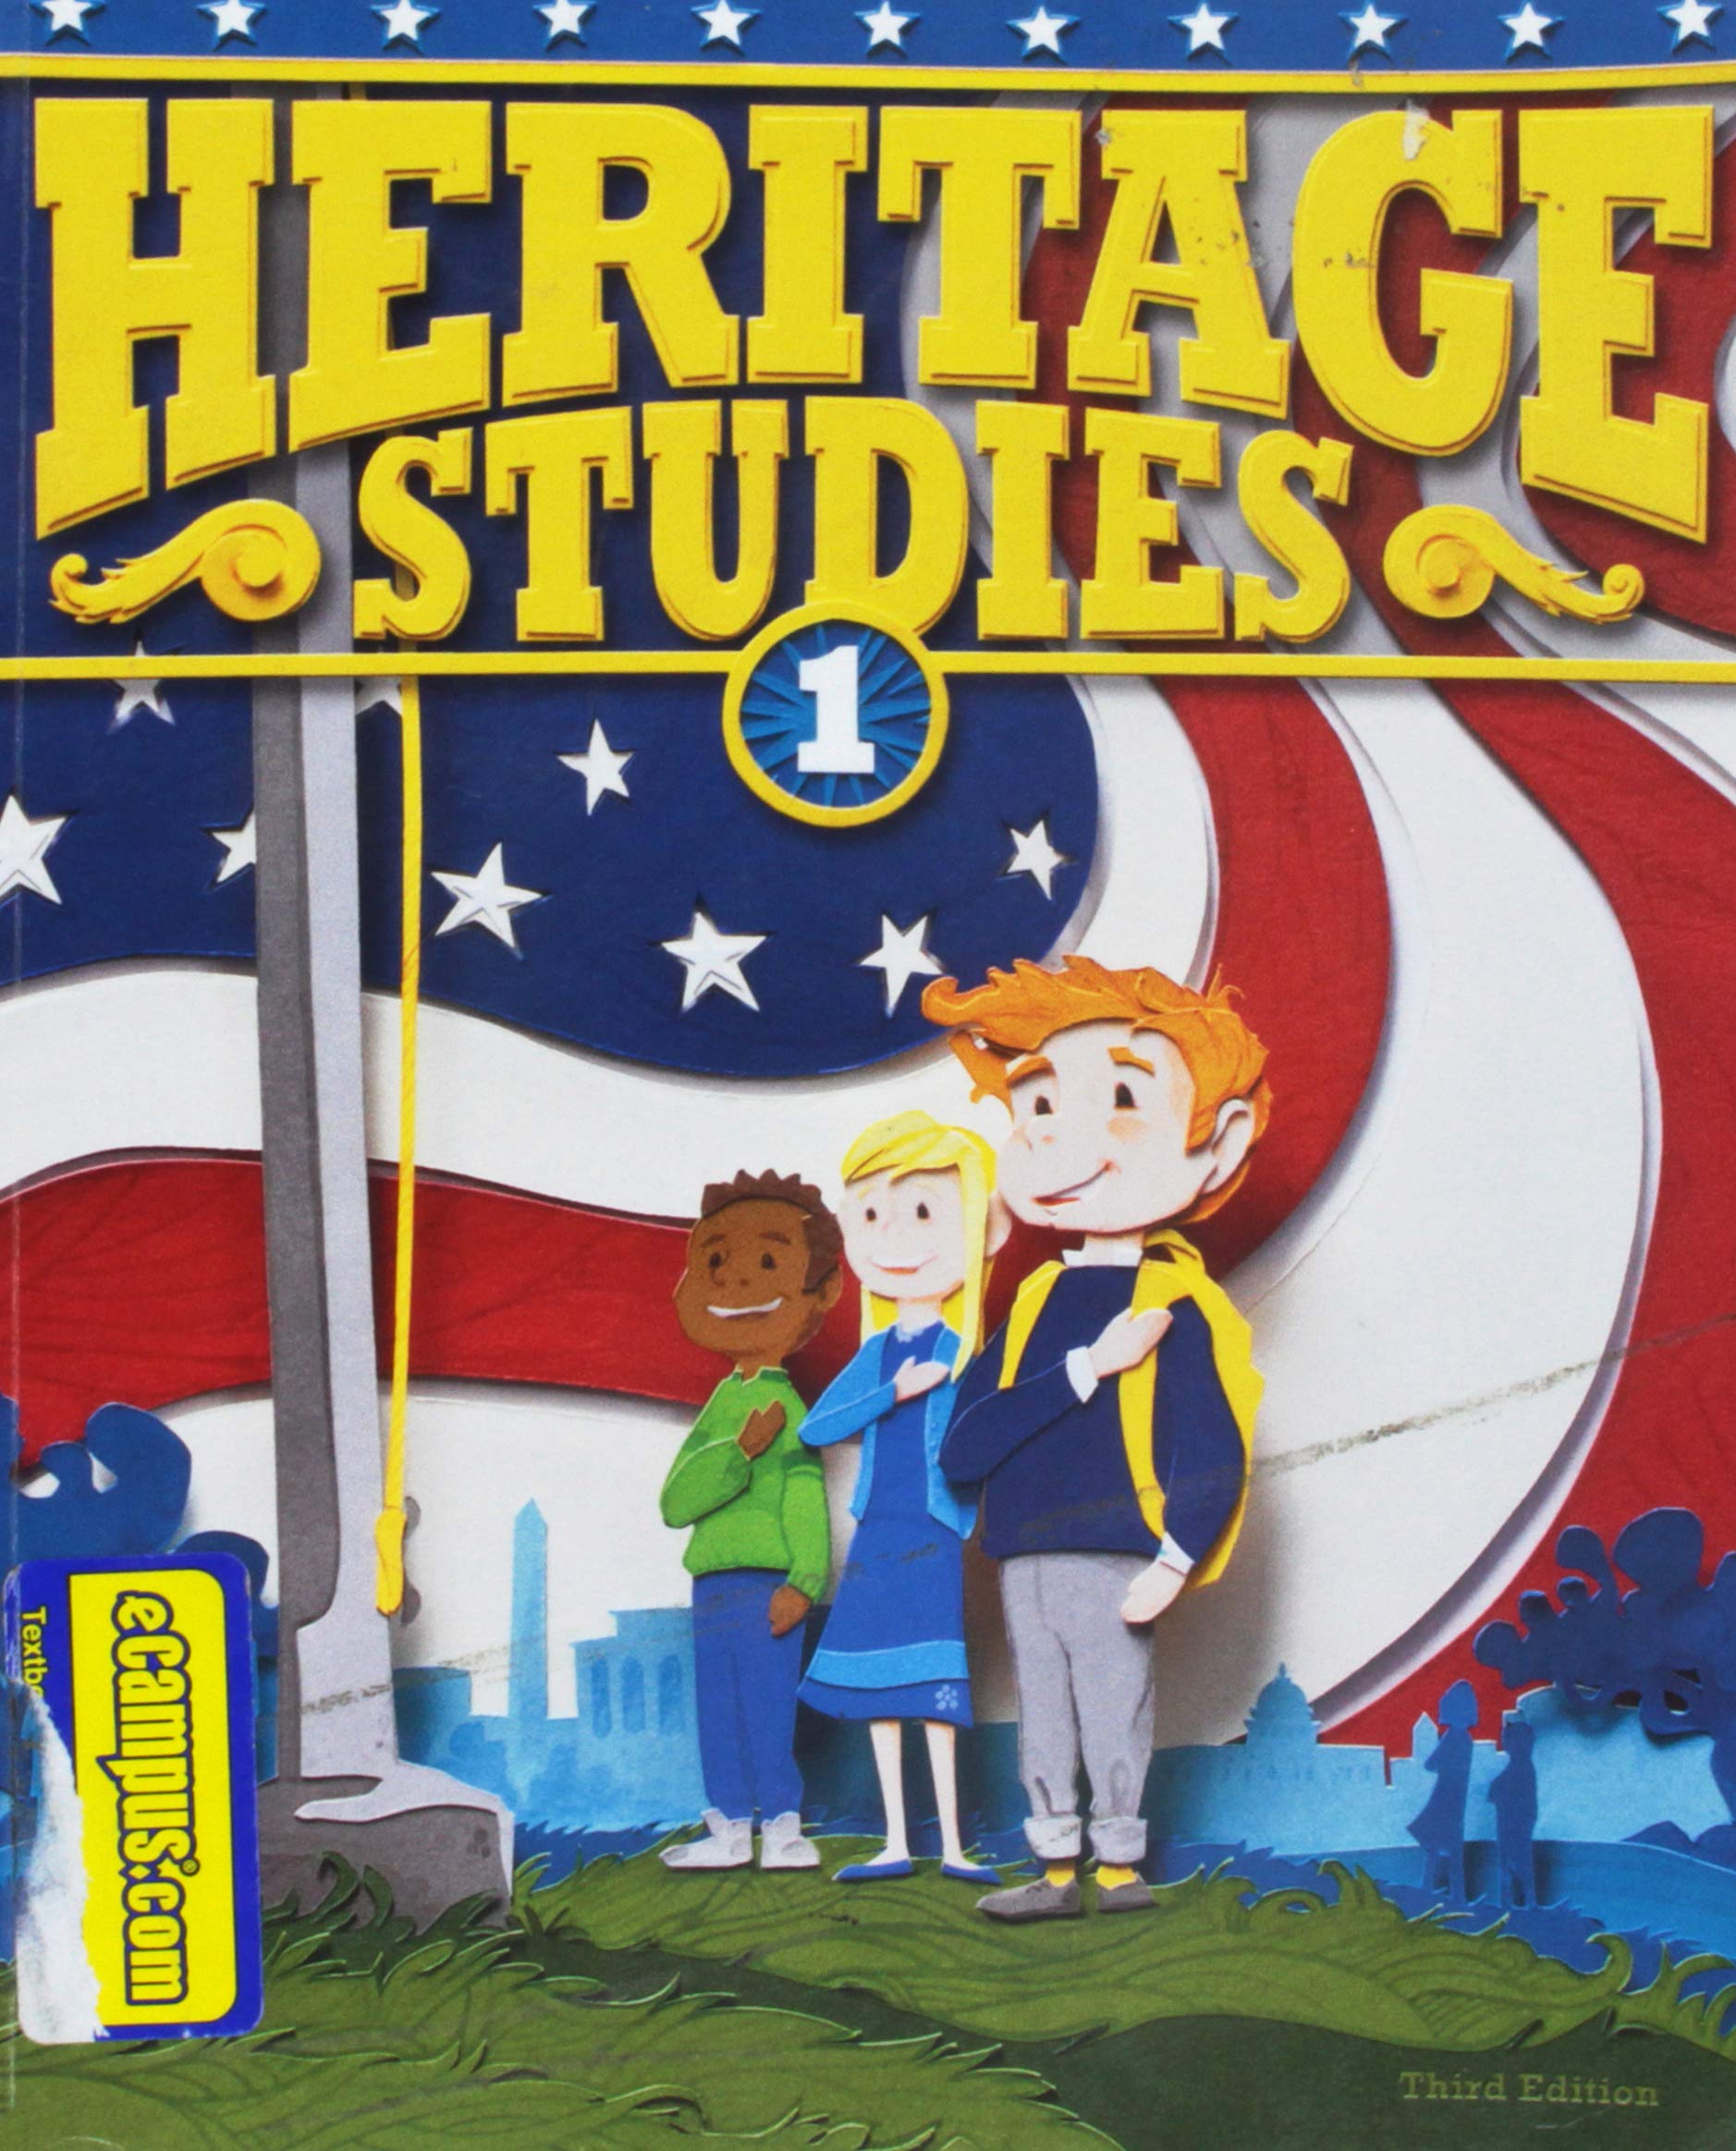 Heritage Studies Student Grade 1 3rd Edition Bju Press